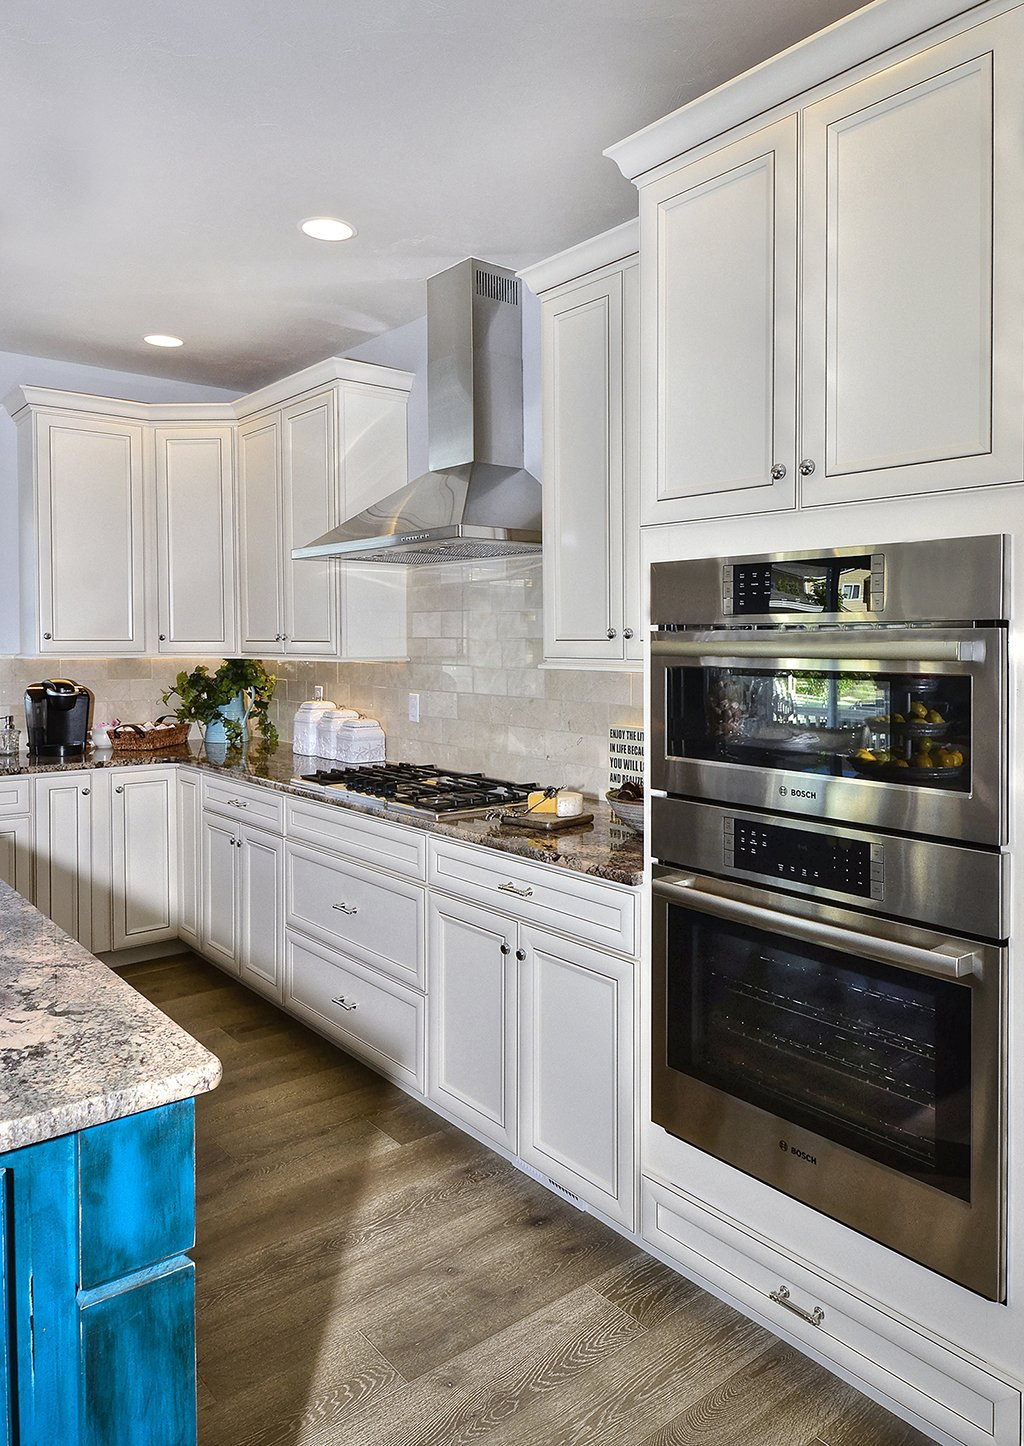 Sold luxurious parade model in gold hill mesa for sale for High end appliances for sale